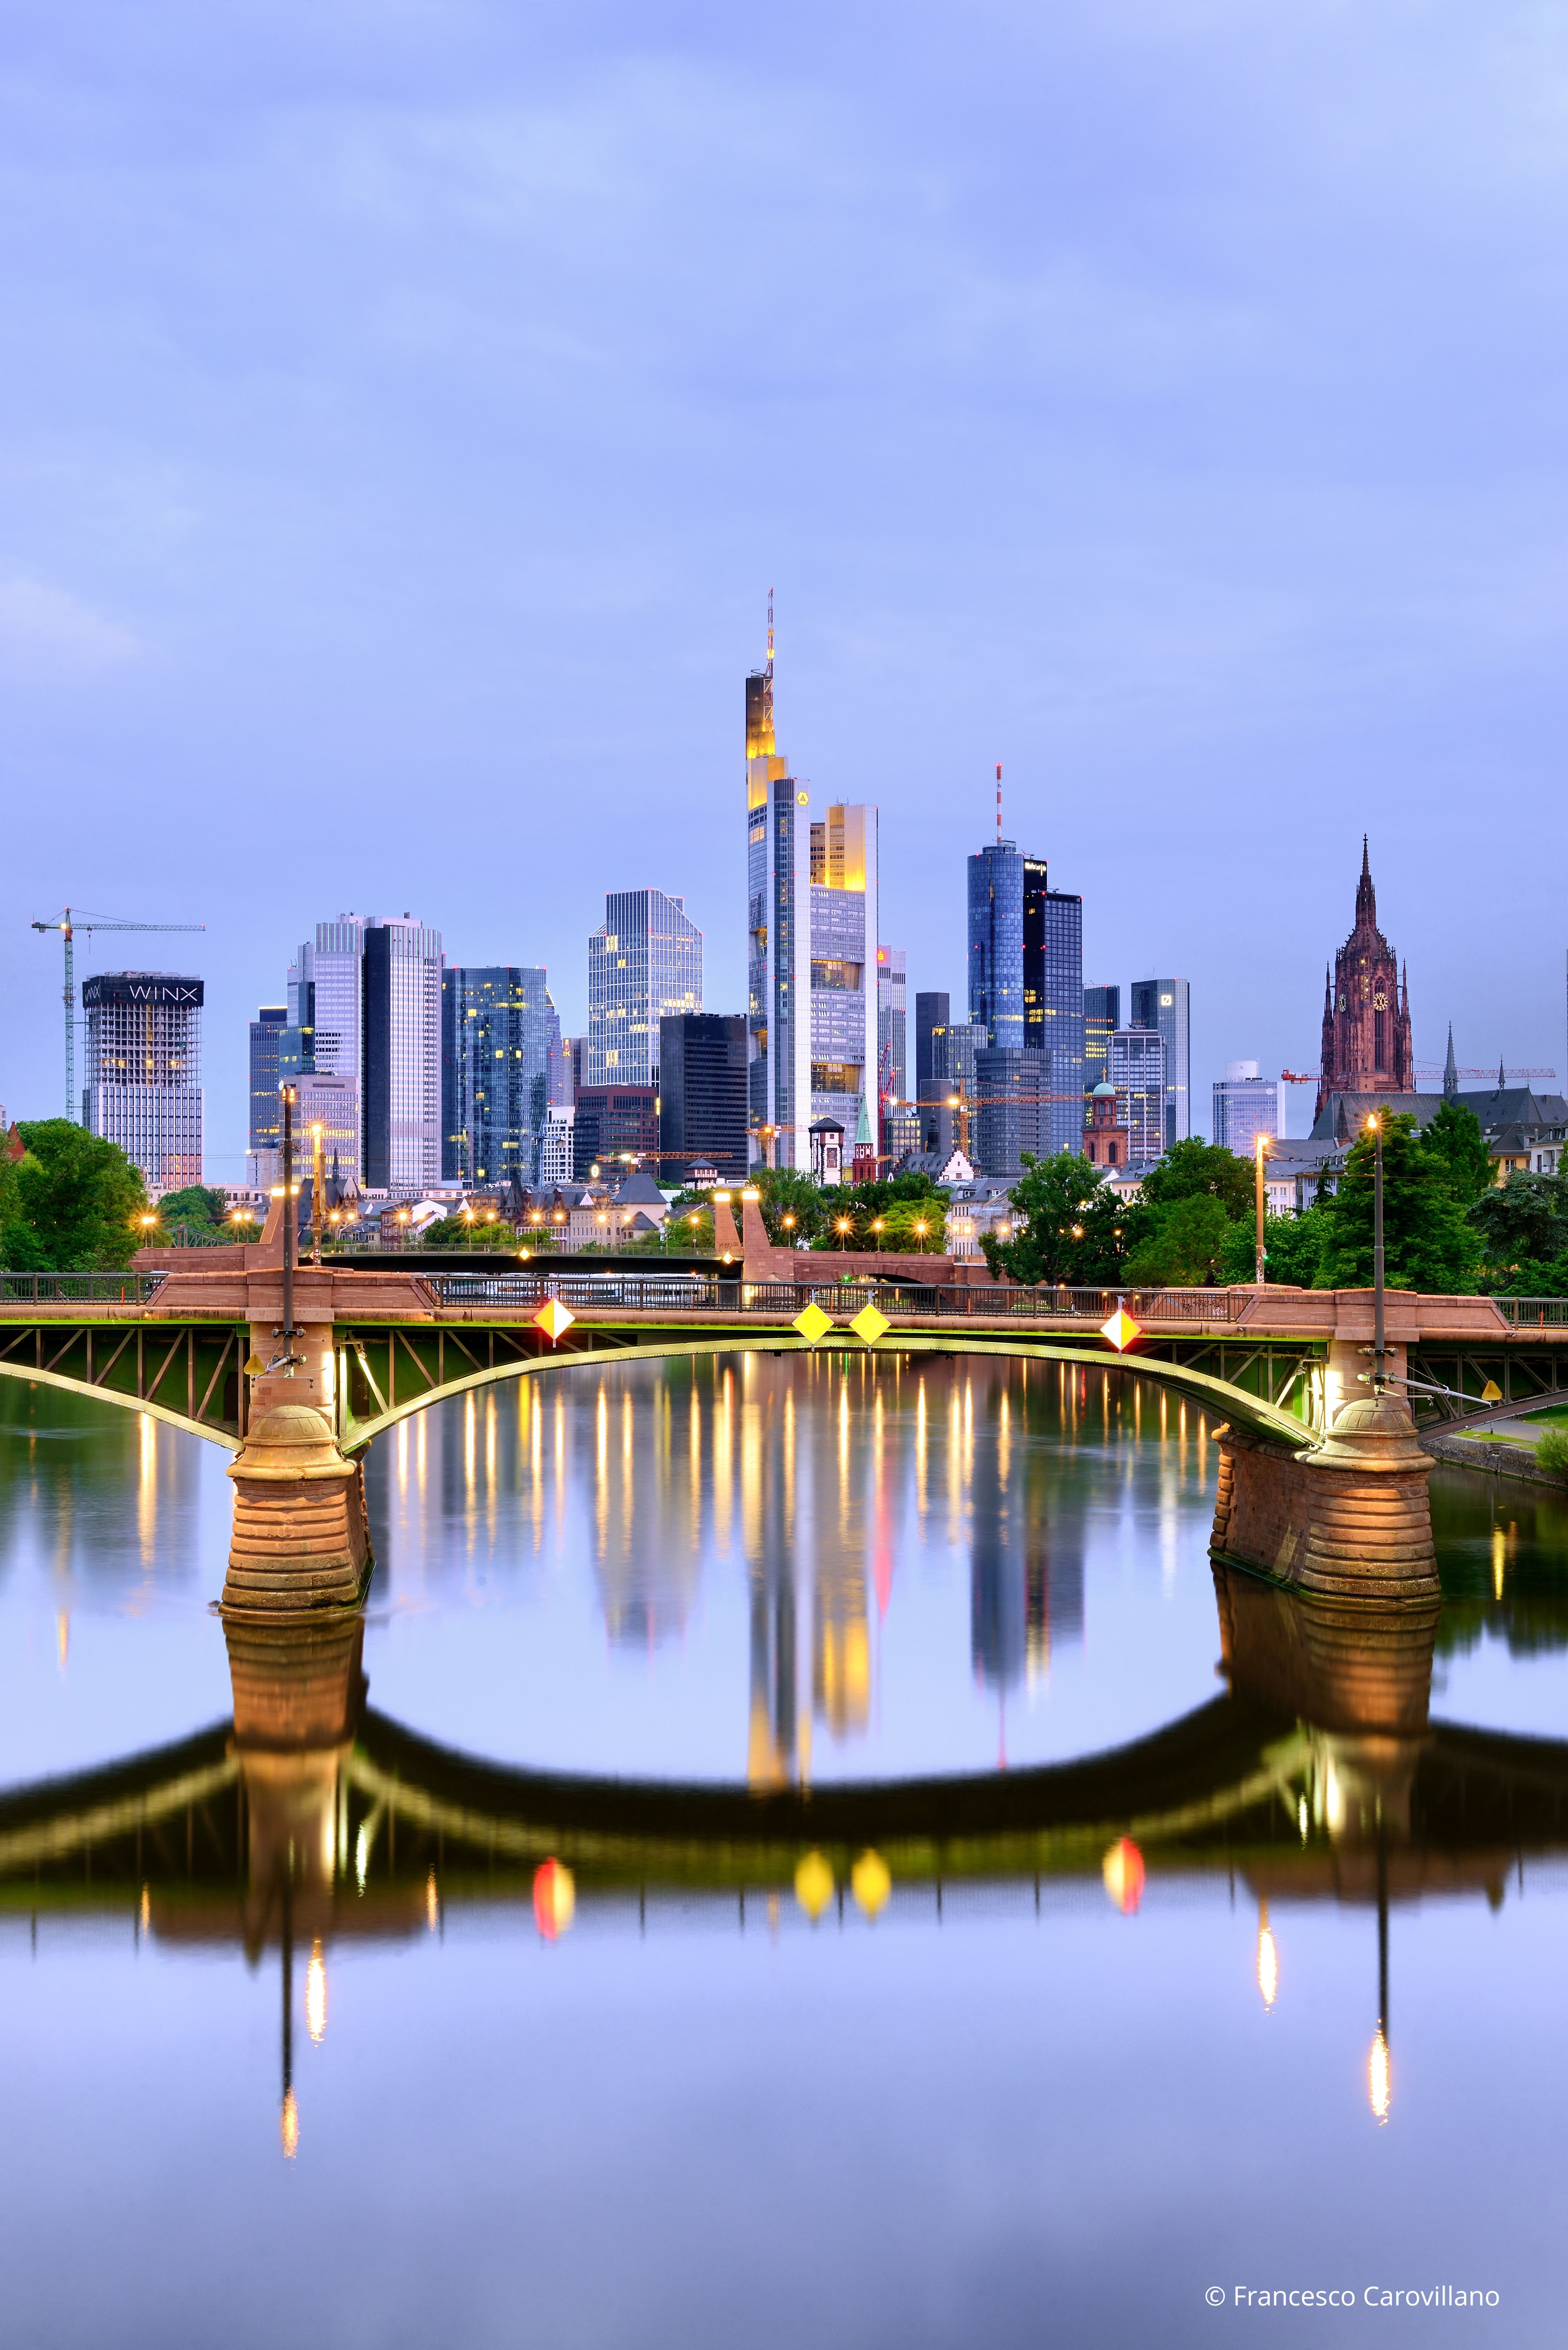 Germany, Hasse, Frankfurt am Main - View over Frankfurt city center and financial district with Main river.